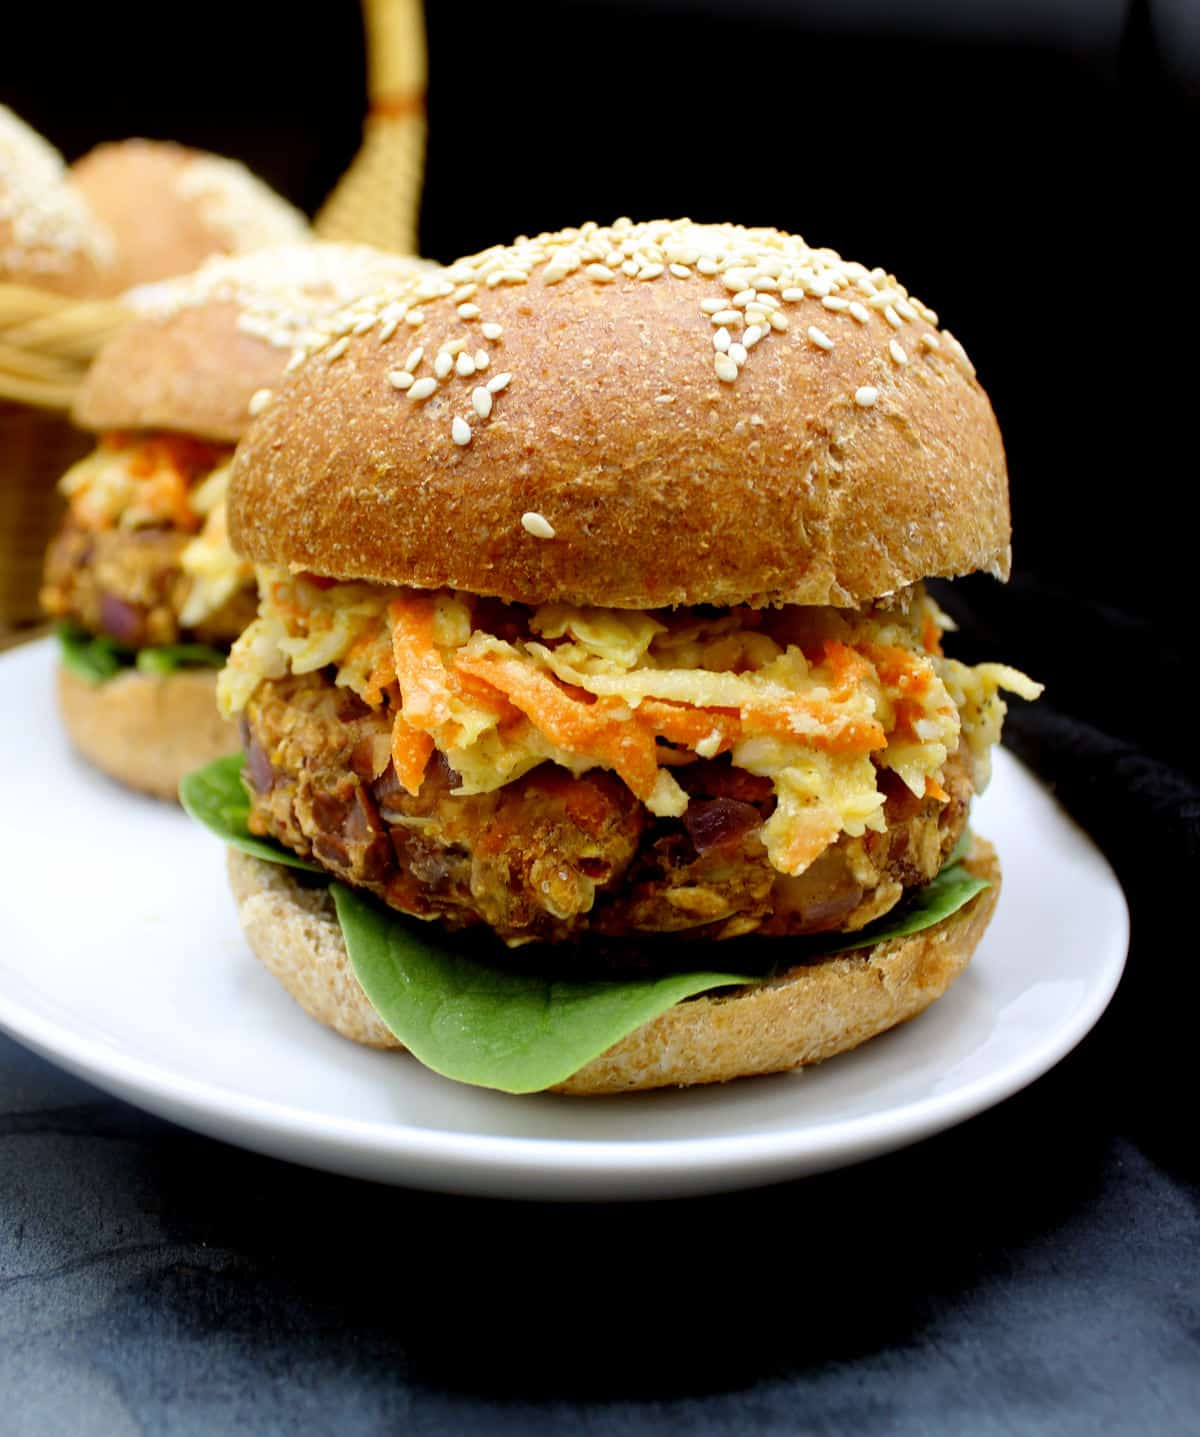 Front shot of a vegan bean and oats veggie burger with greens, coleslaw and served in a whole wheat burger bun on a white plate.